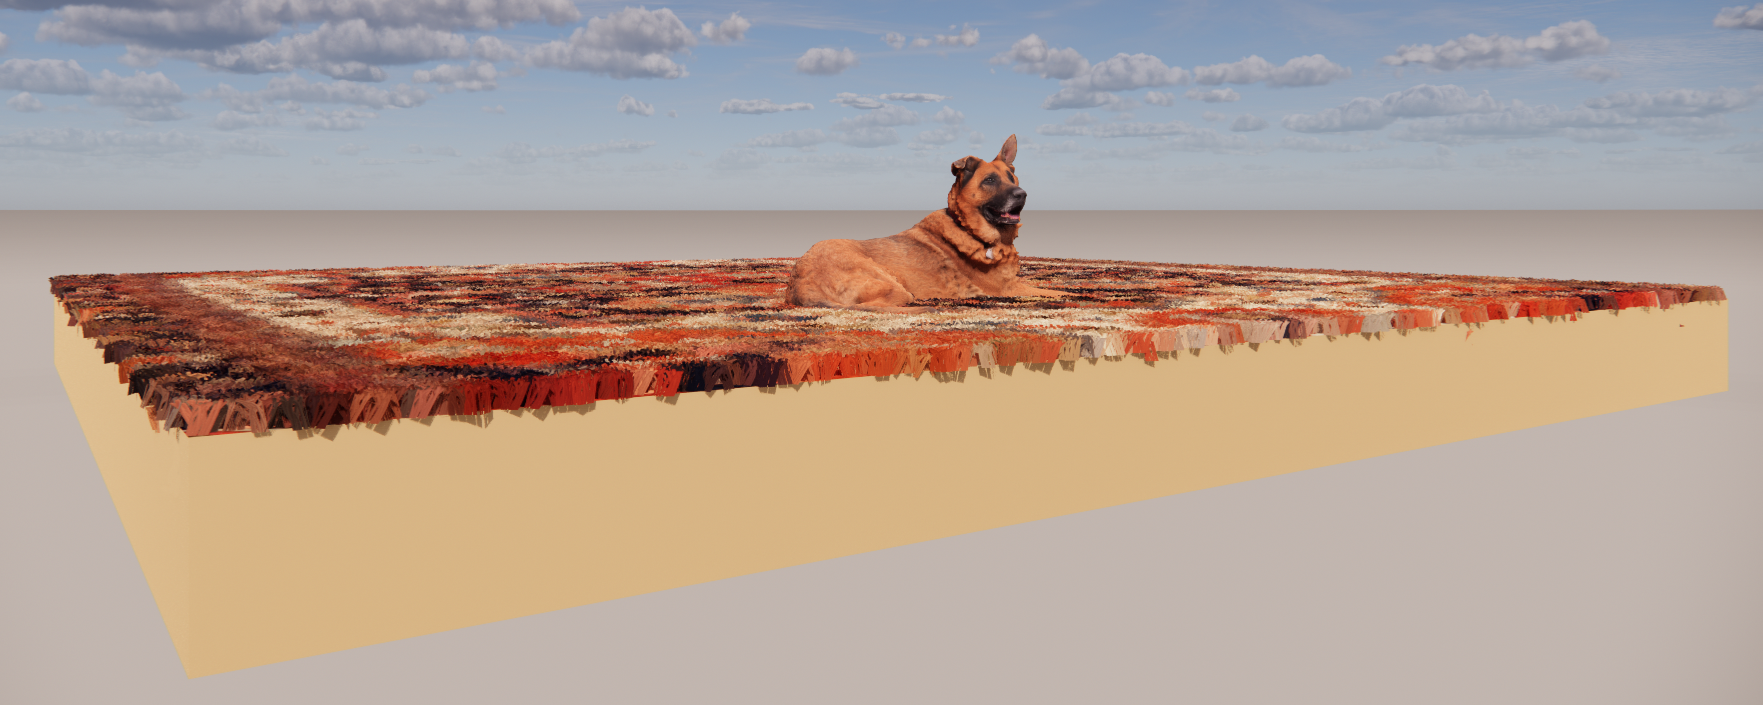 Carpet Material (with Dog Asset) in ArchiCAD Settings